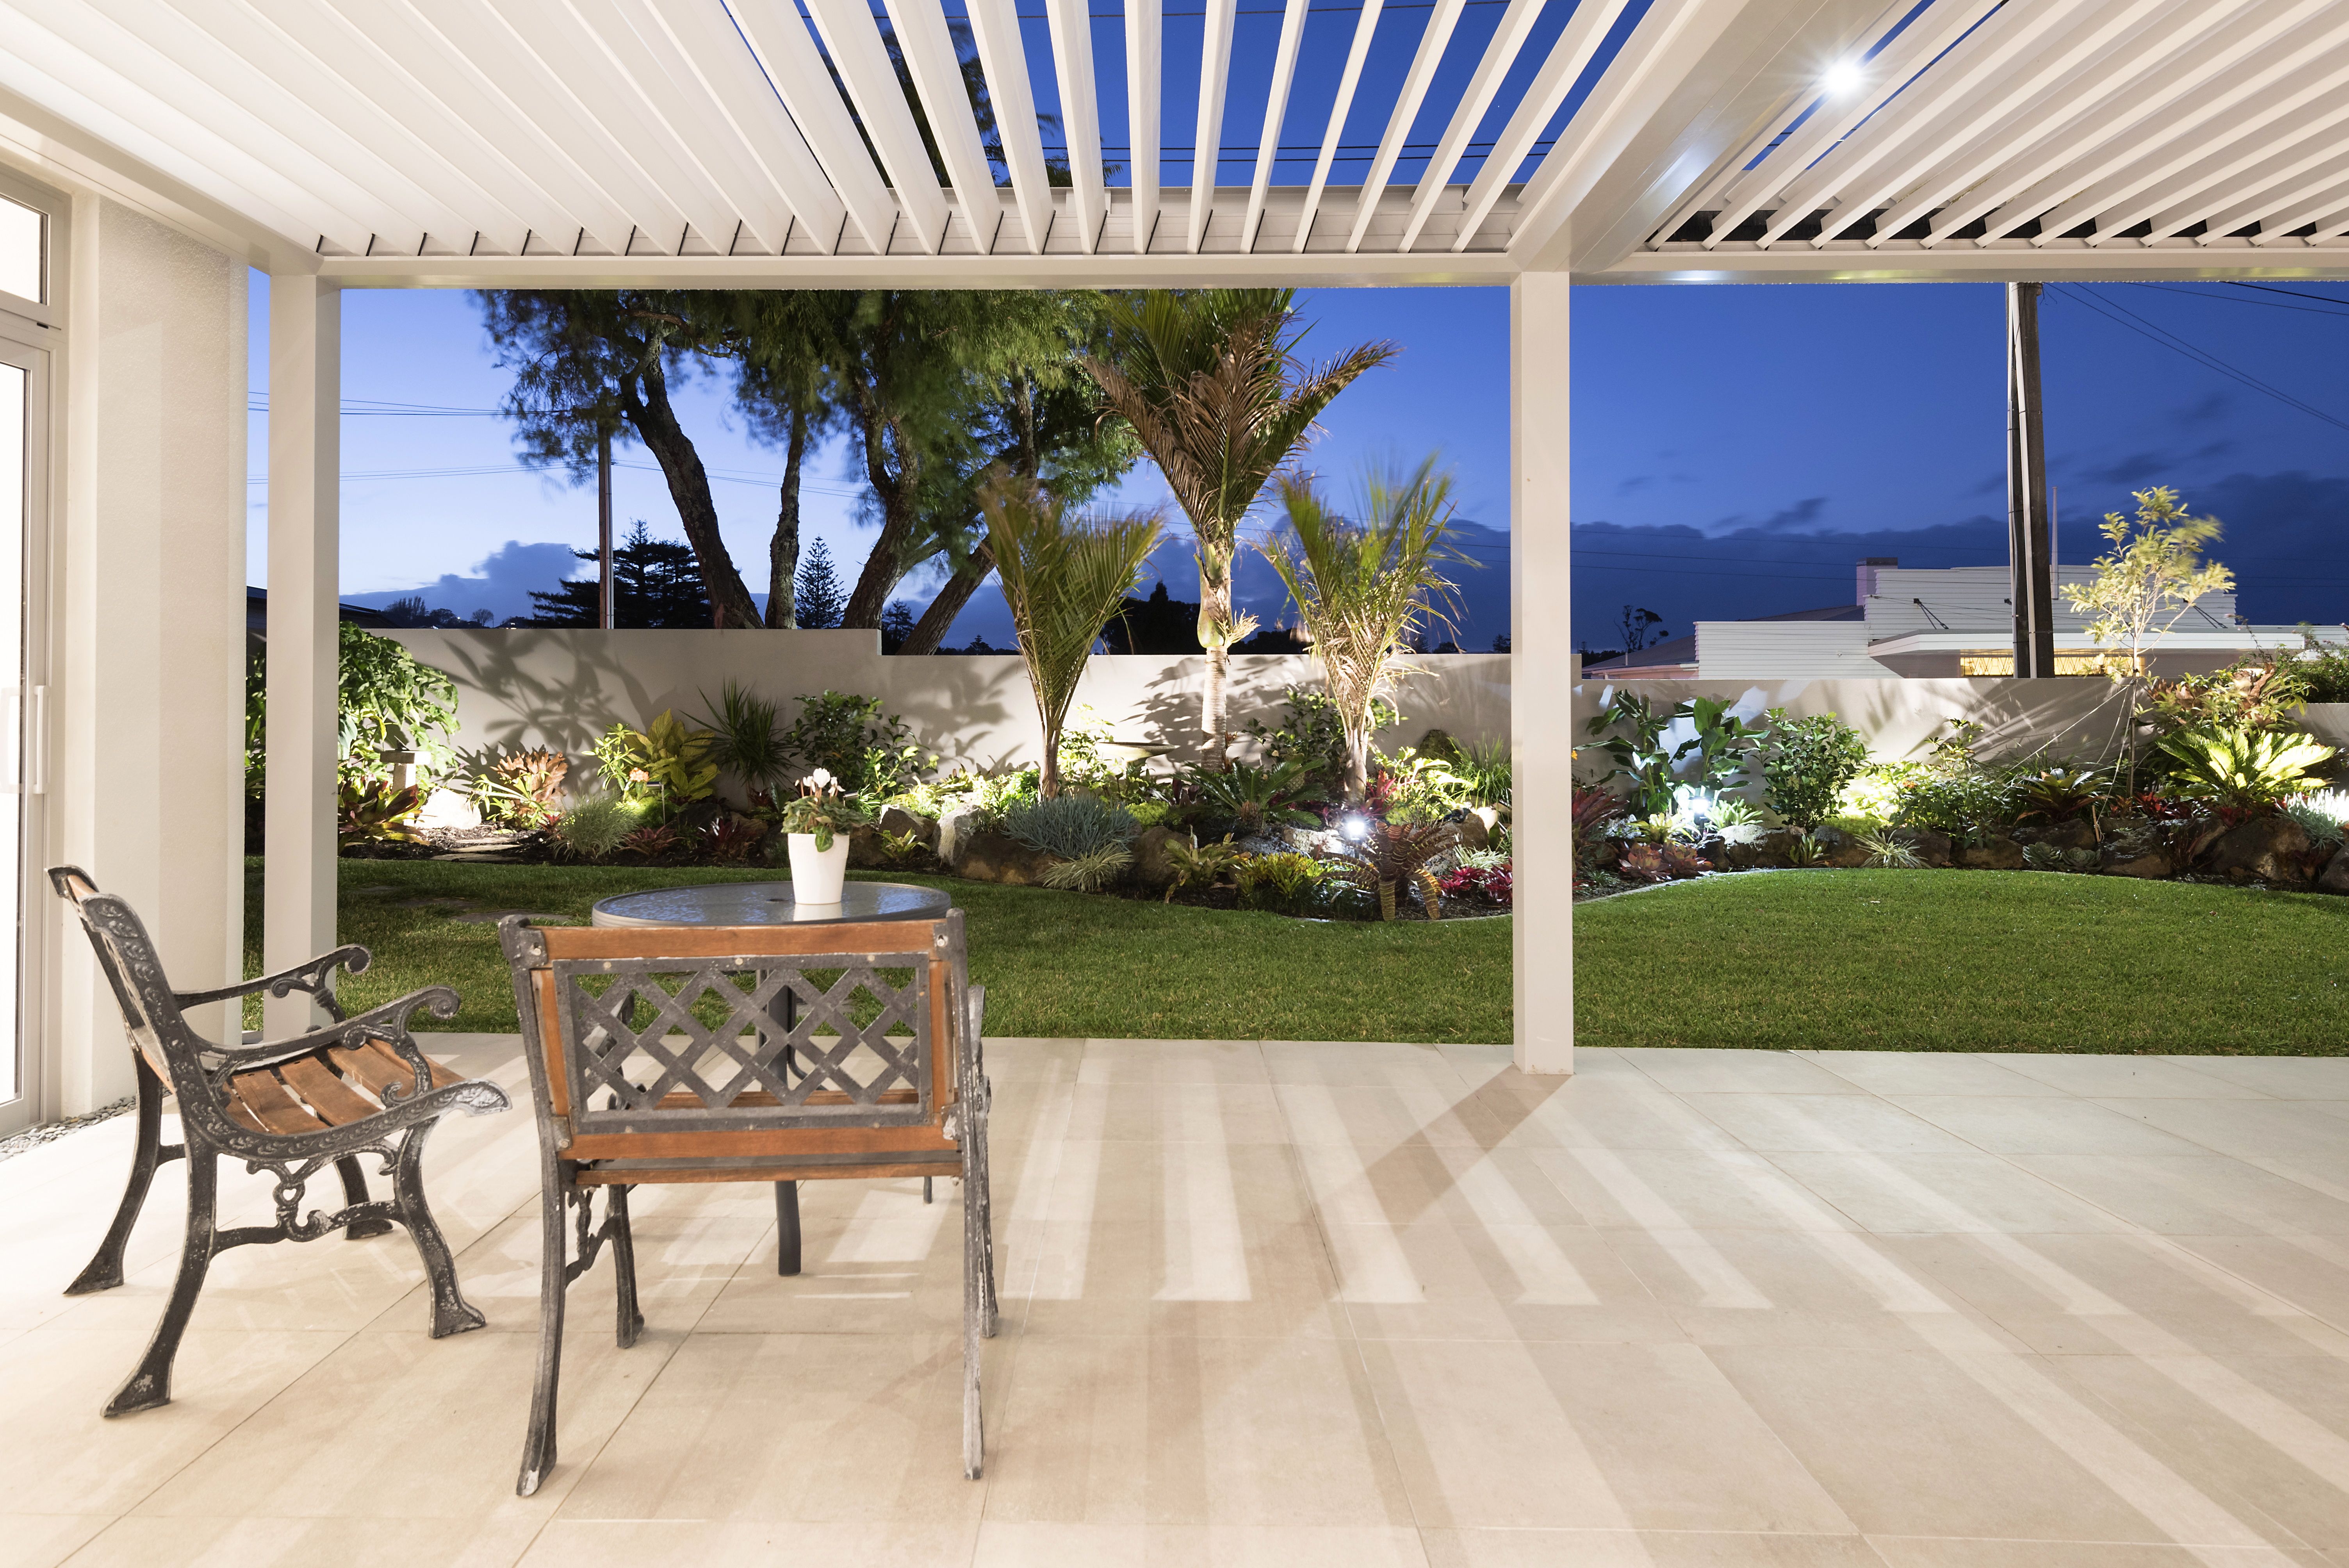 Louvre system for outdoor living